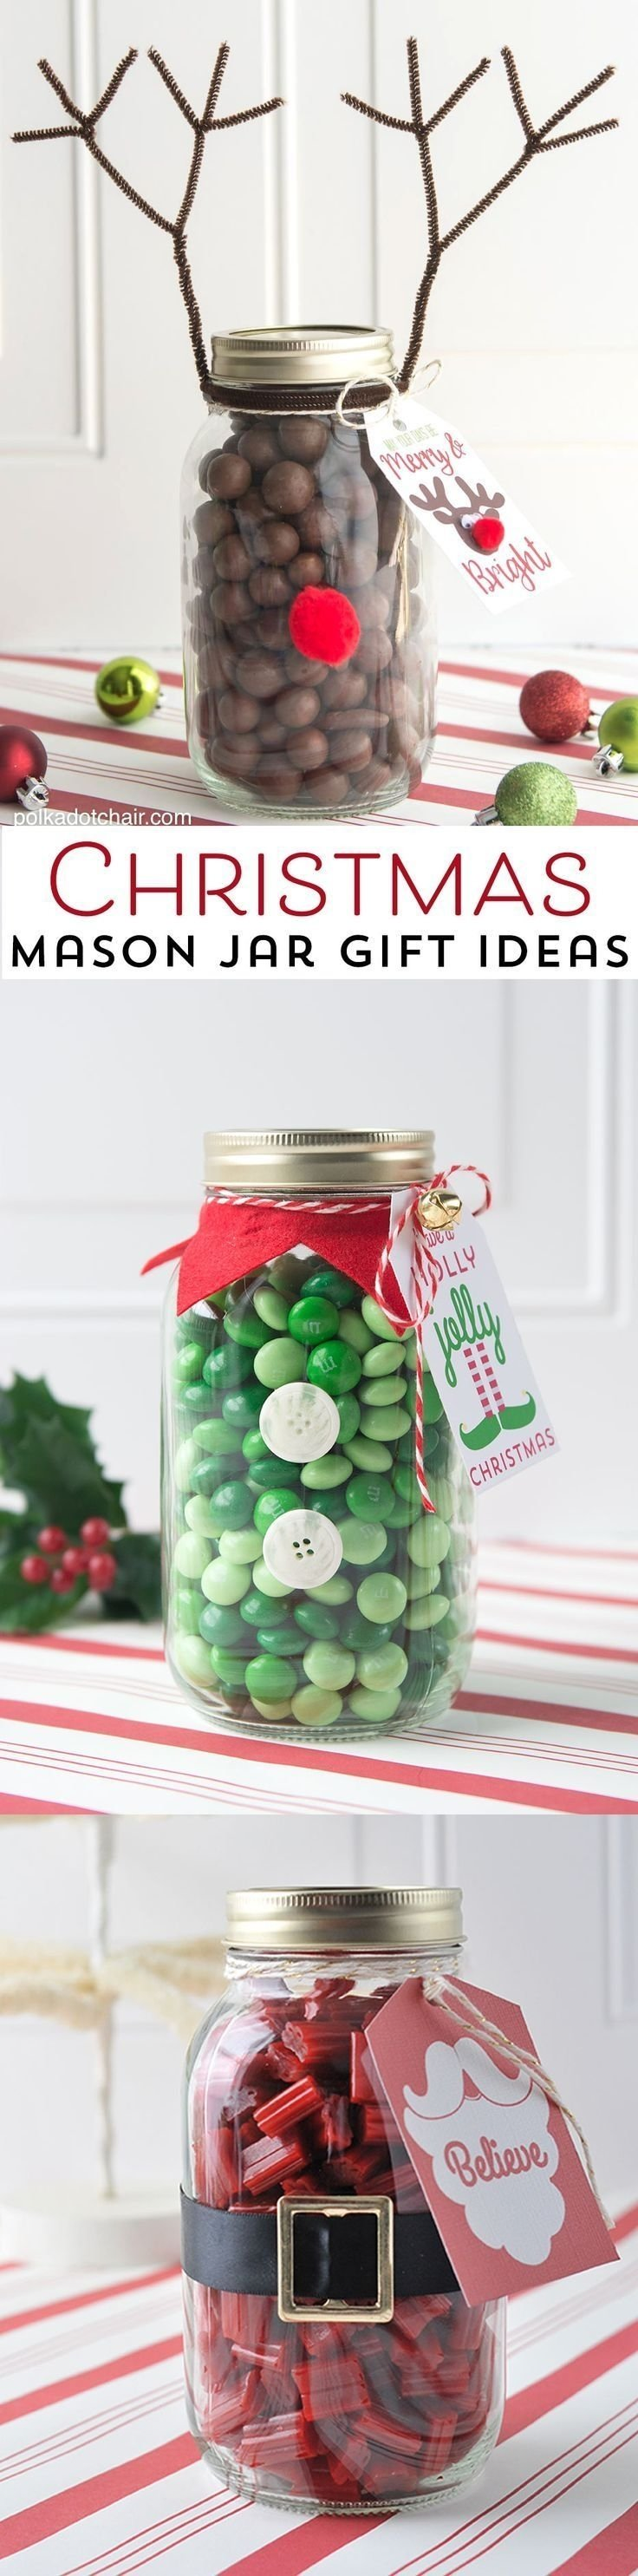 10 Fashionable Holiday Gift Ideas For Teachers 111 best teacher gift ideas images on pinterest gift ideas 1 2021